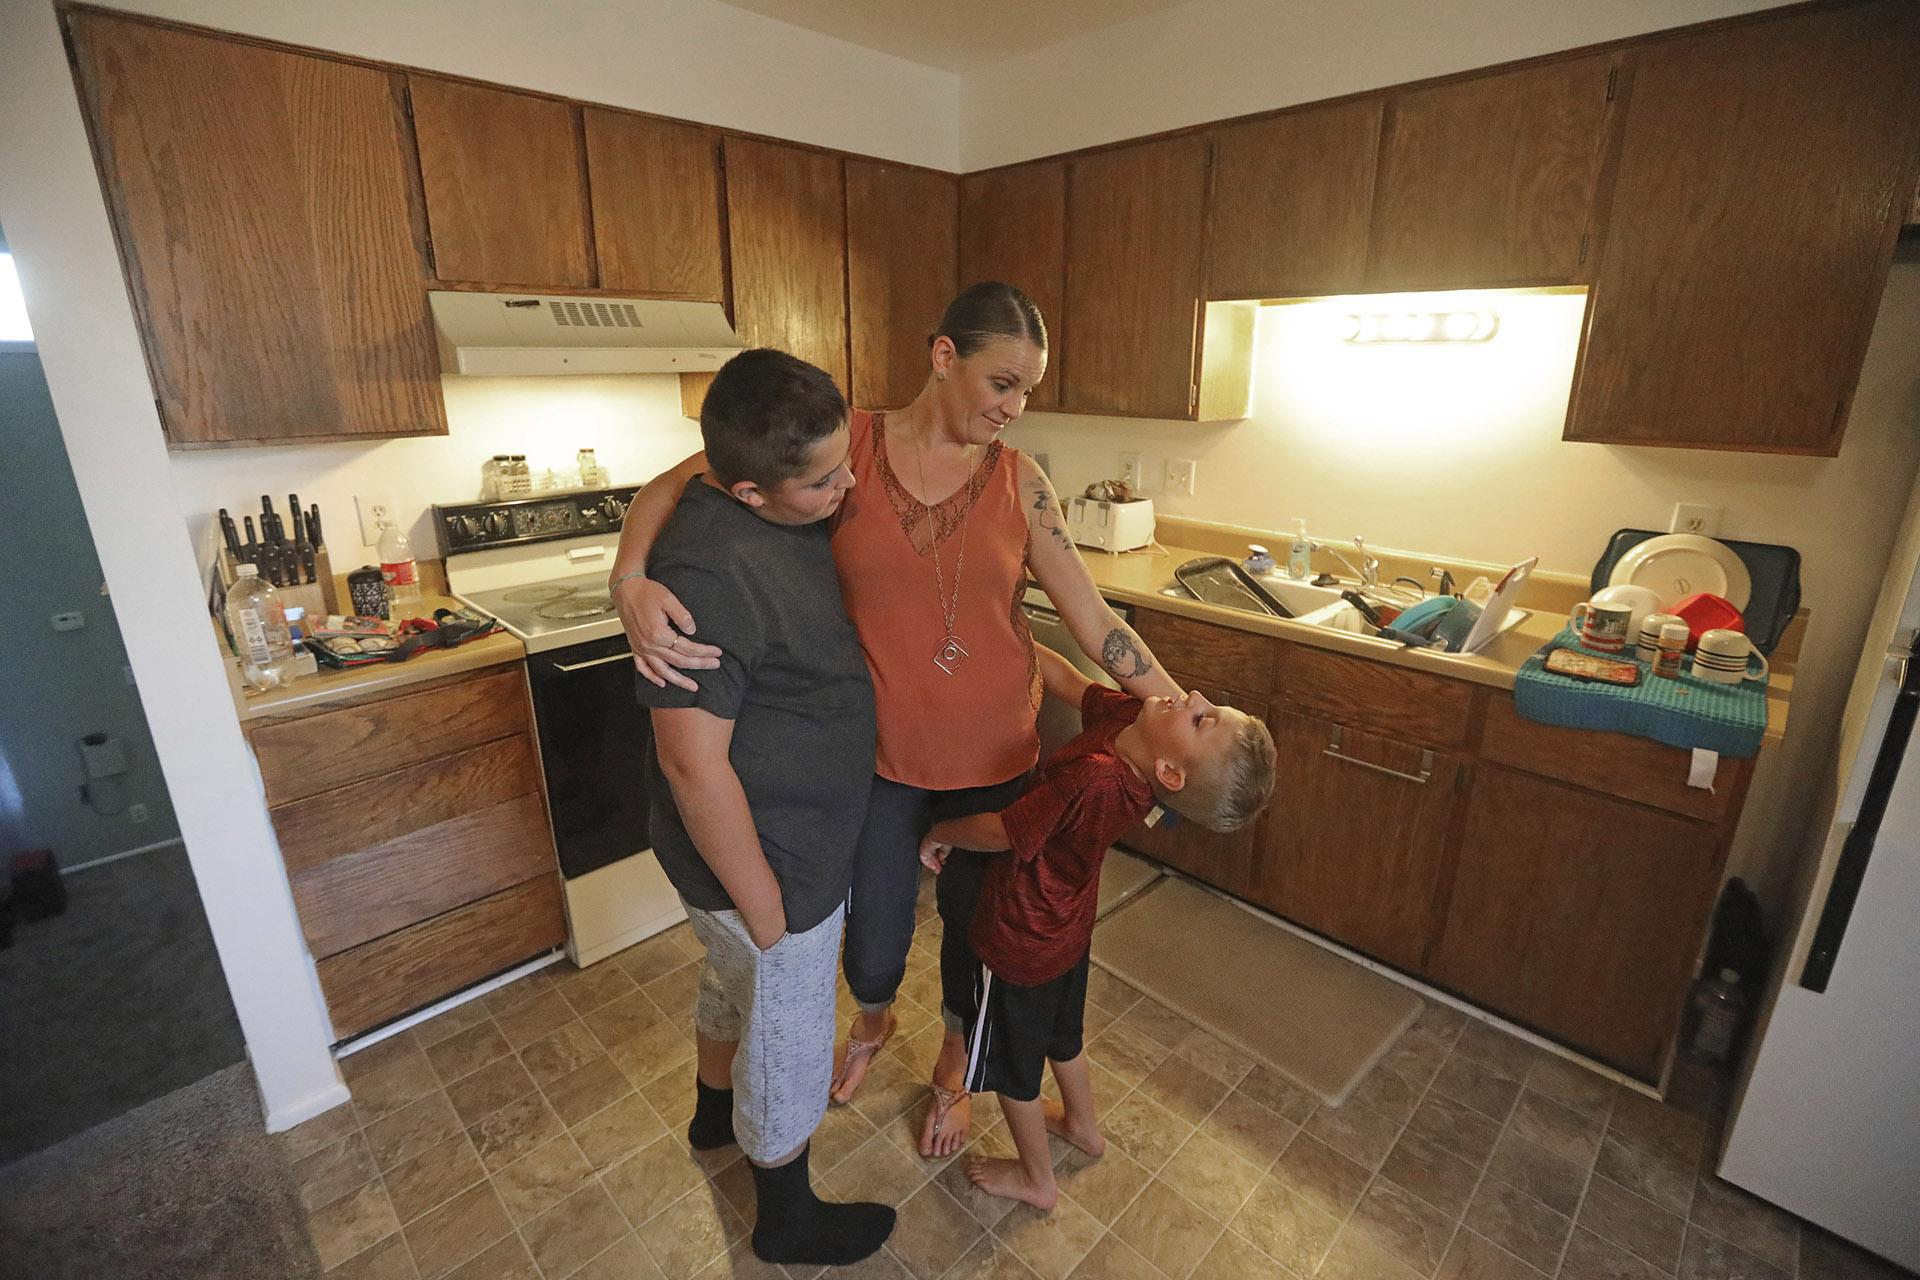 Misty Dotson hugs her son's at their home Tuesday, Aug. 20, 2019, in Murray, Utah. Dotson is a 33-year-old single mother of two boys, ages 12 and 6, who goes to Planned Parenthood for care through the Title X program. (AP Photo / Rick Bowmer)